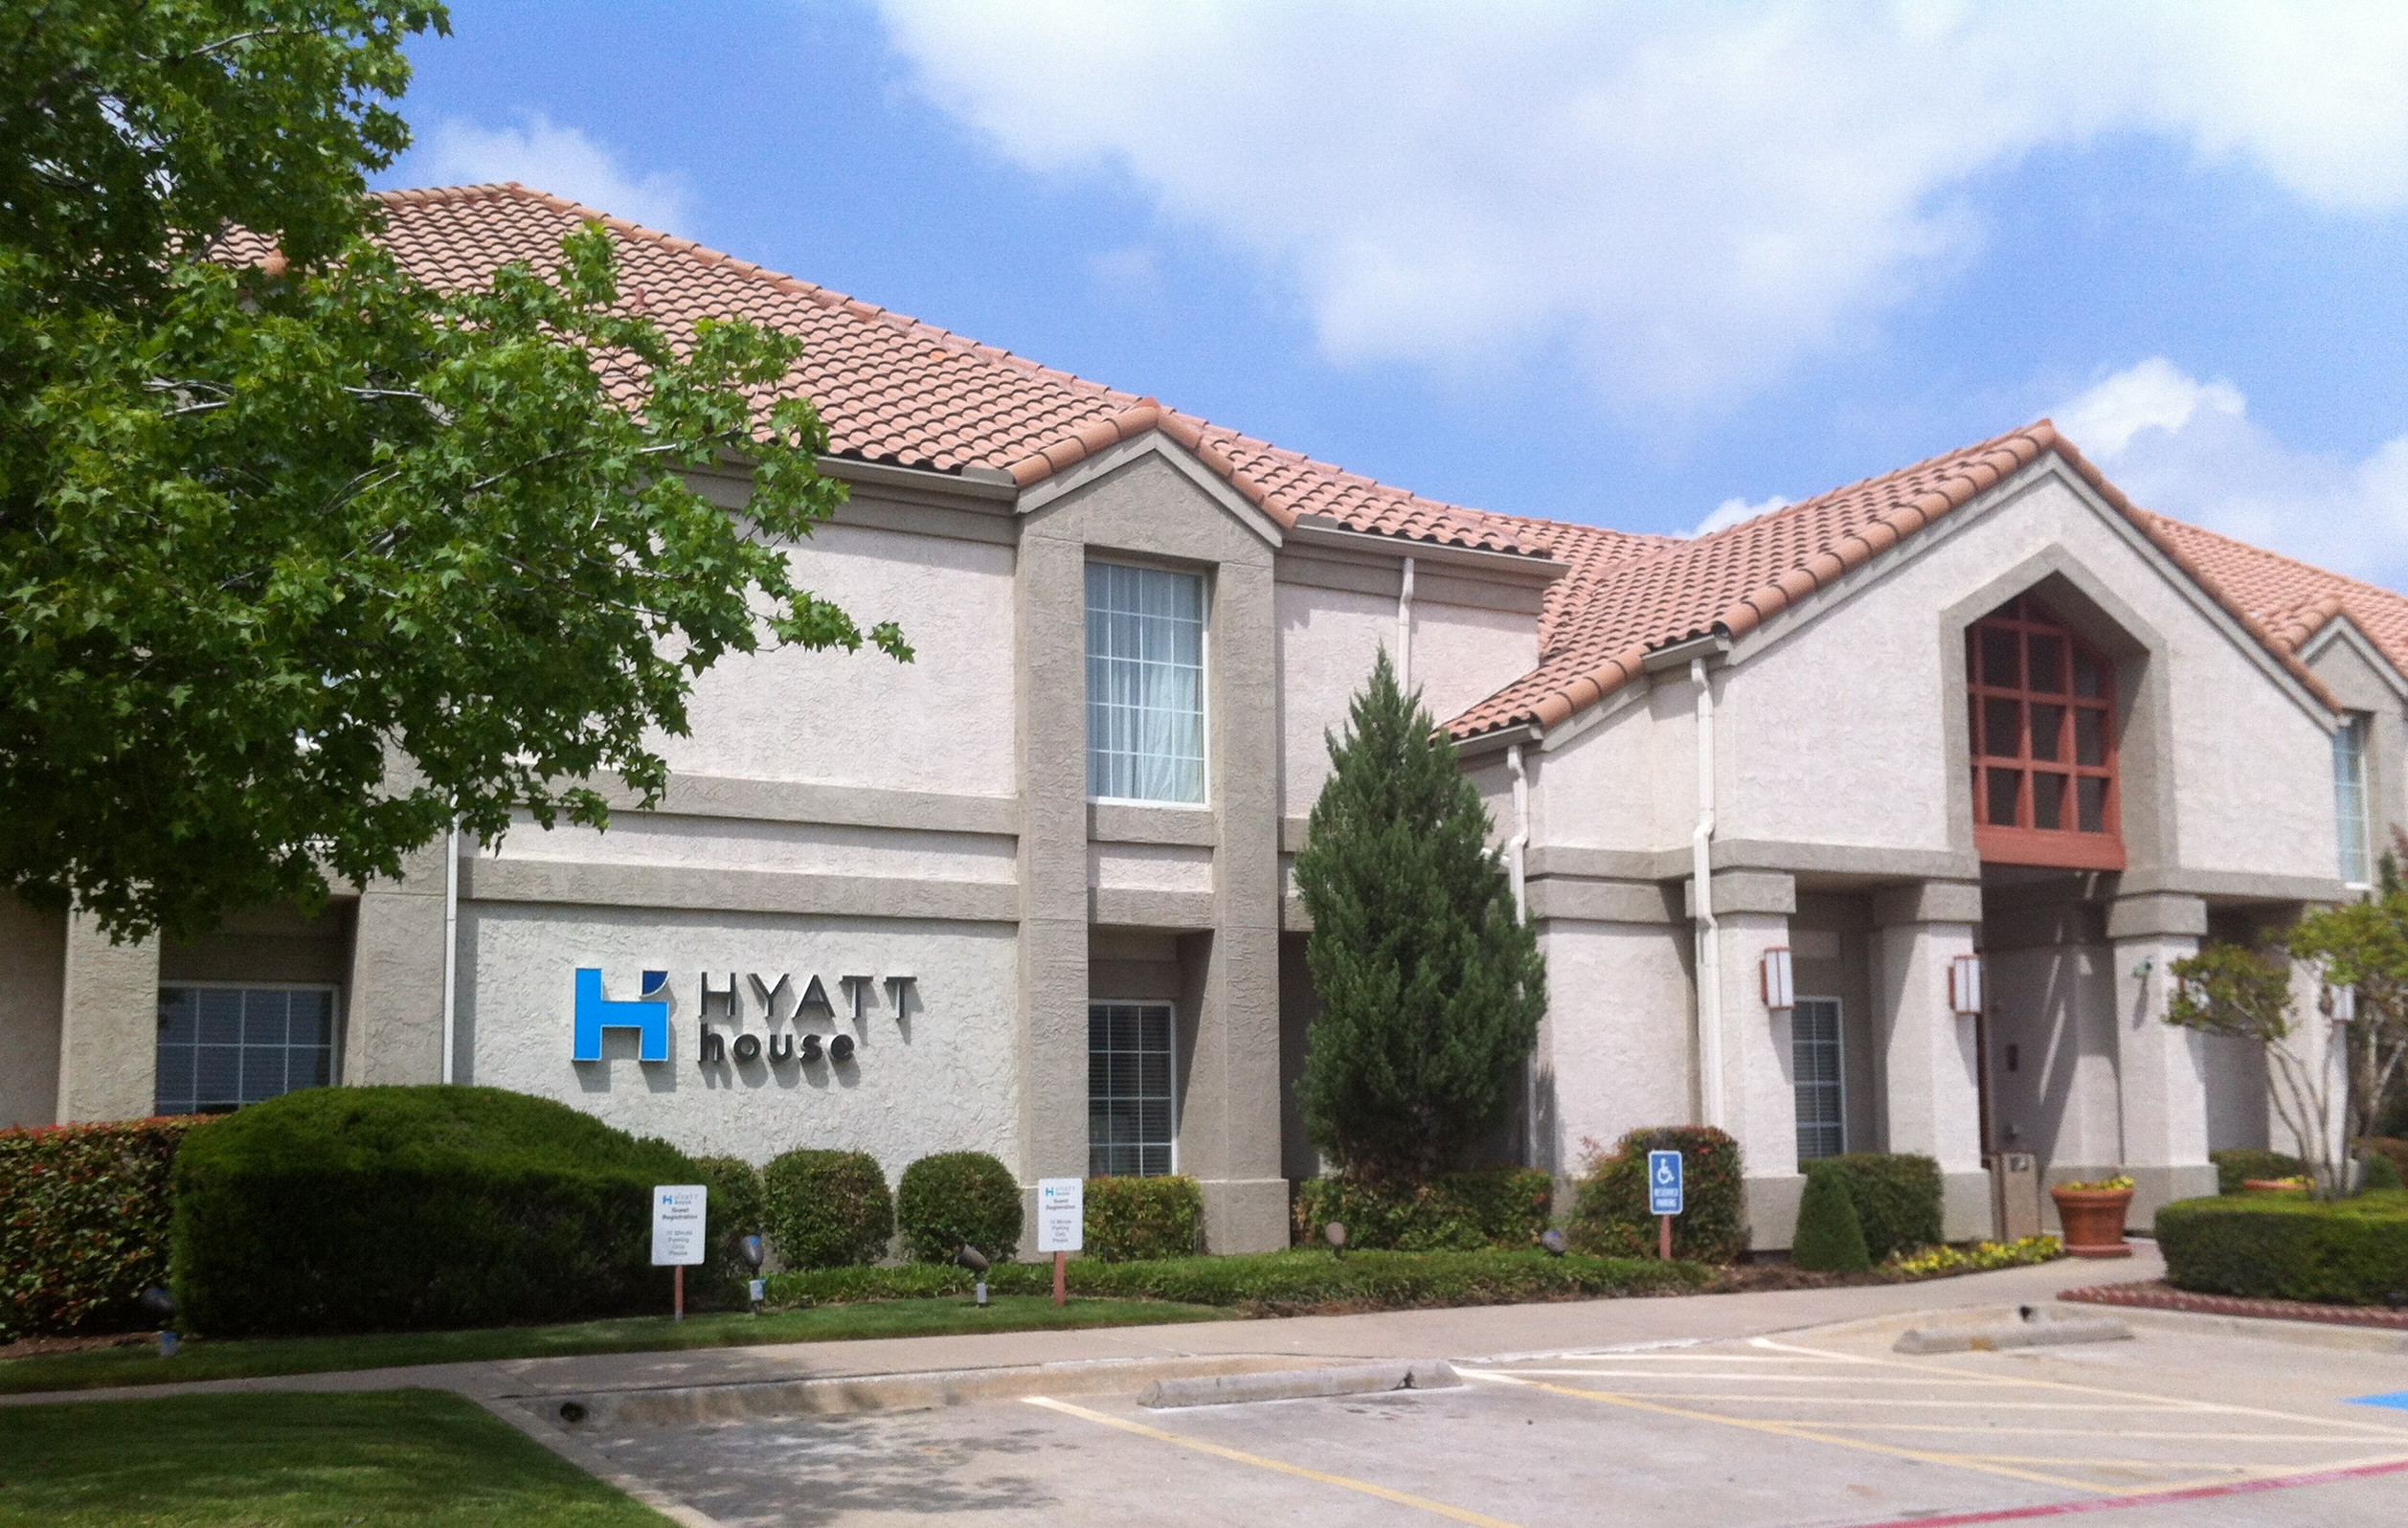 ‪HYATT house Dallas/Las Colinas‬